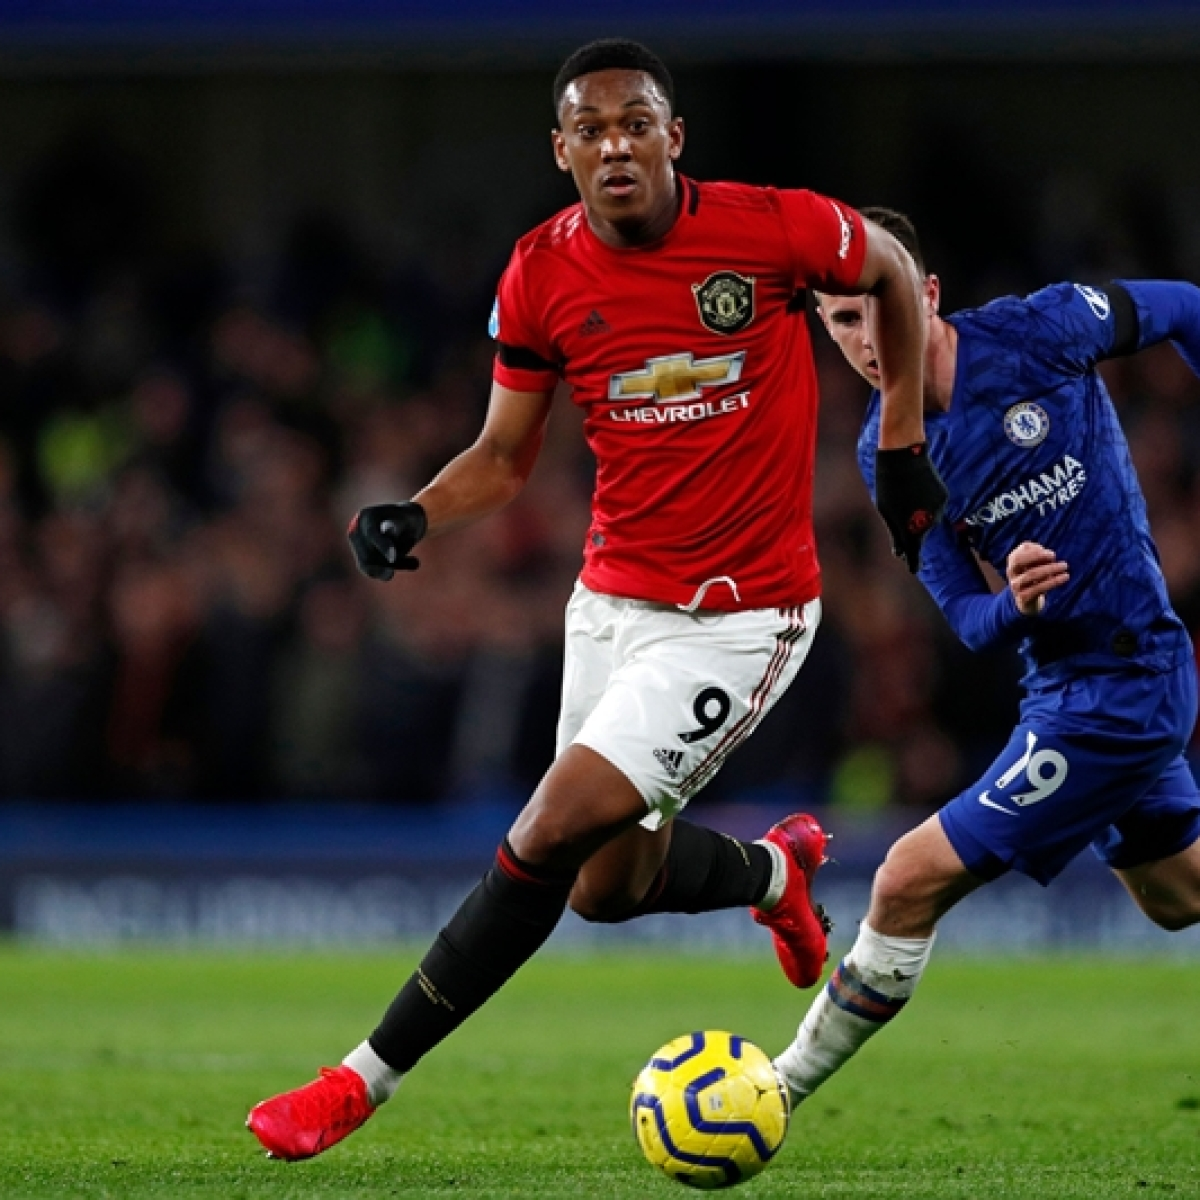 Europa League: Anthony Martial grabs key goal for Man Utd in Bruges